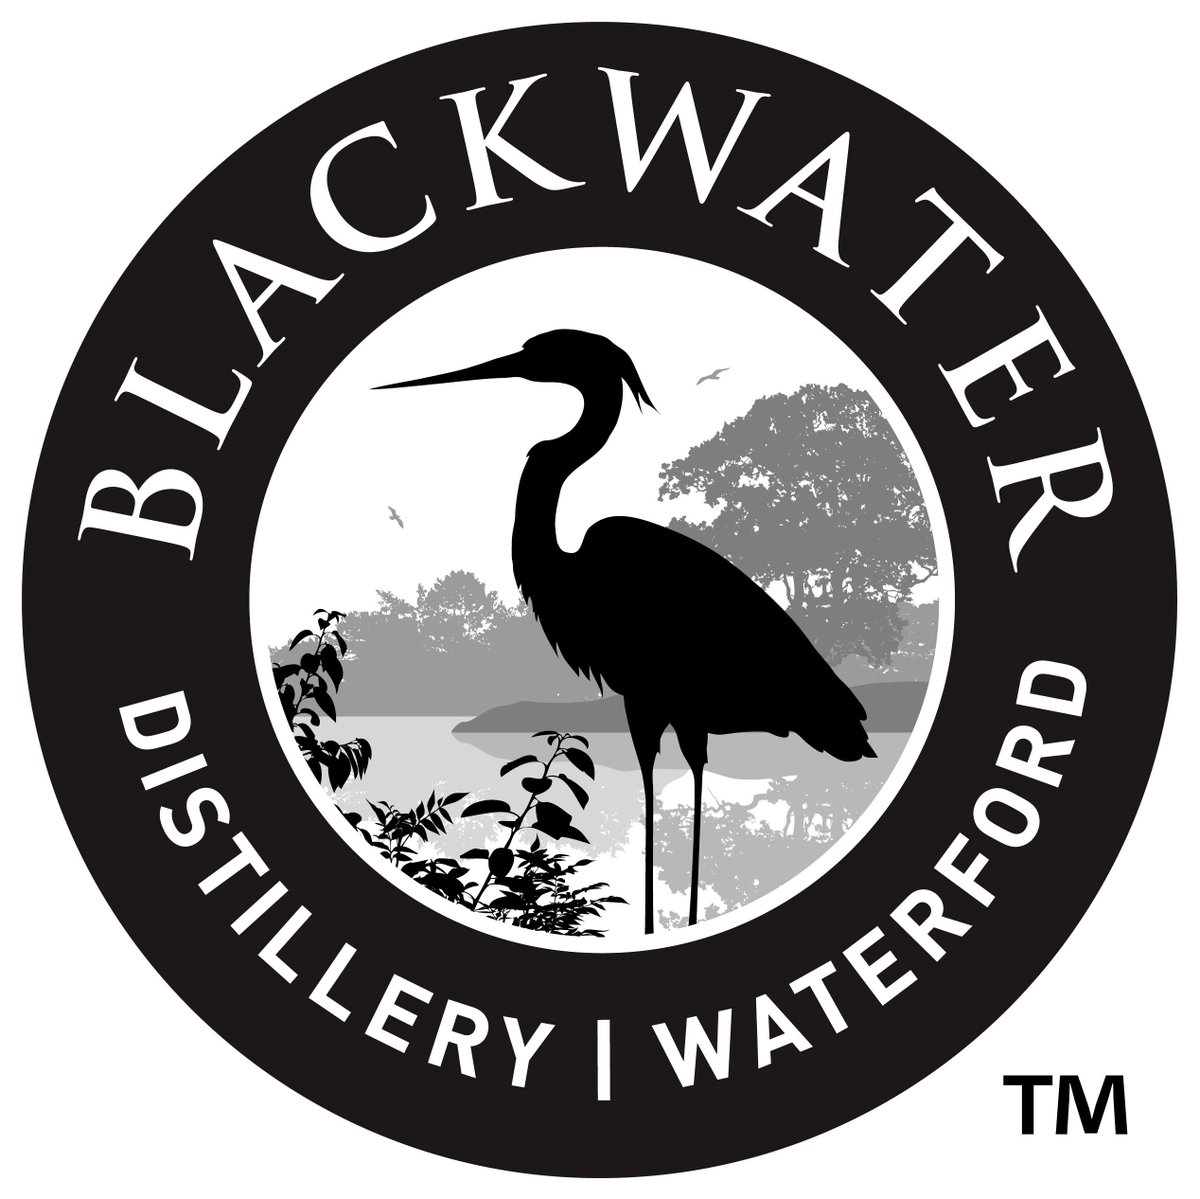 Congratulations to all the team @BlackDistillery on becoming the 21st operation #IrishWhiskey distillery in Ireland. The growth in Irish whiskey continues! https://t.co/59936Qxa4p